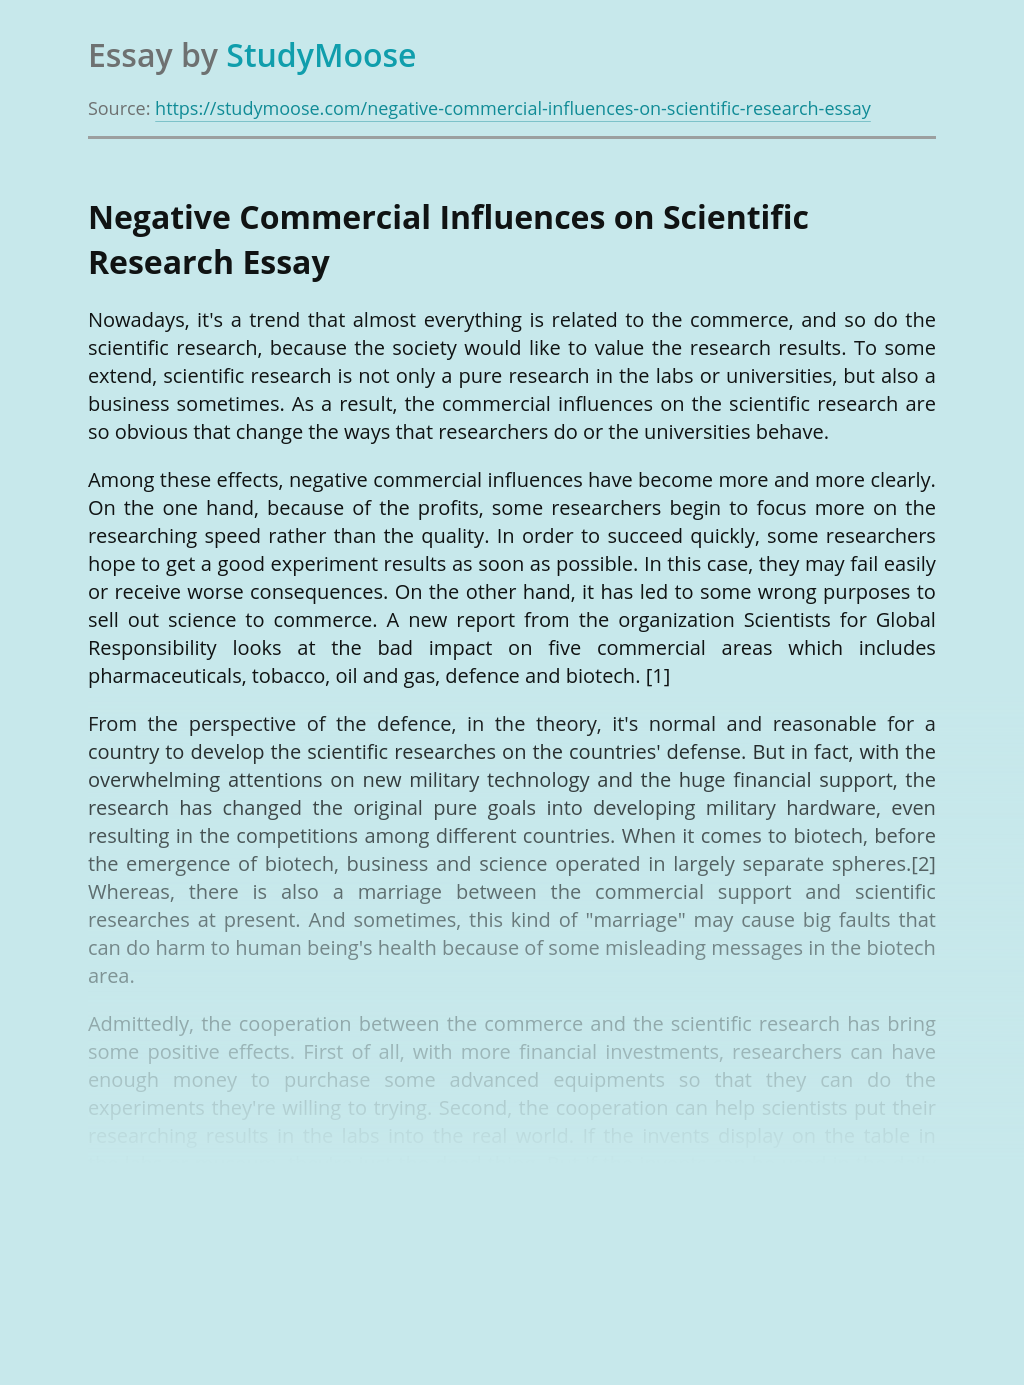 Negative Commercial Influences on Scientific Research